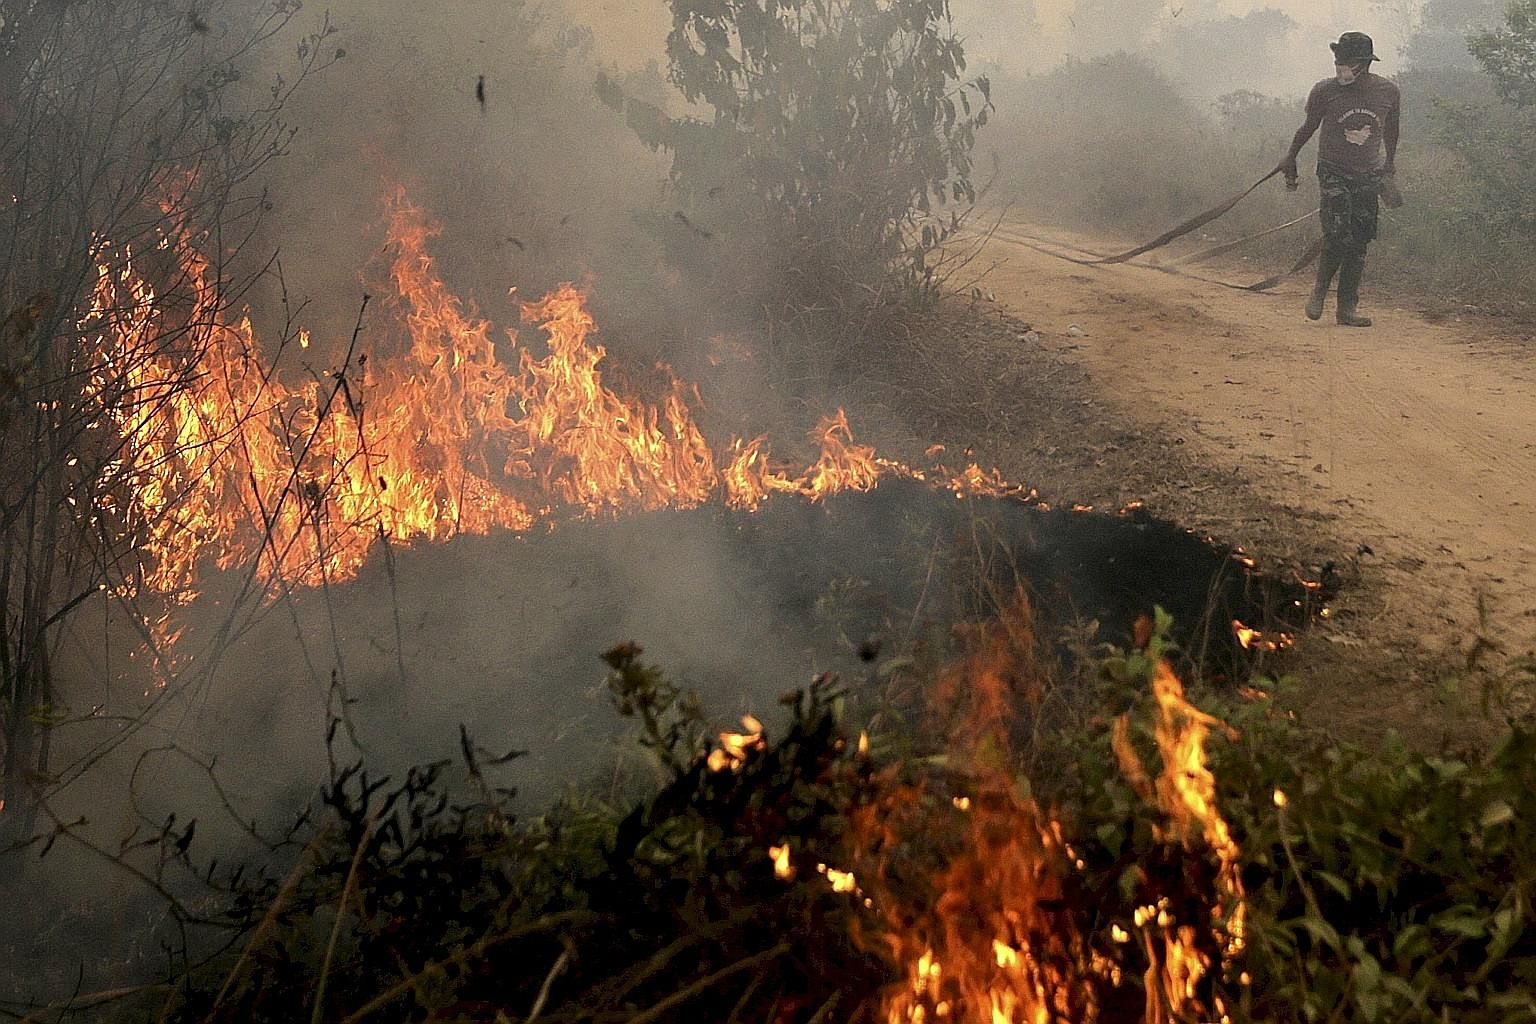 An Indonesian soldier fighting a peatland fire in South Sumatra last month. According to the writer, the real cause of the haze is the drainage of peatlands which become a tinderbox that can easily be set alight, burning in conditions that create mor